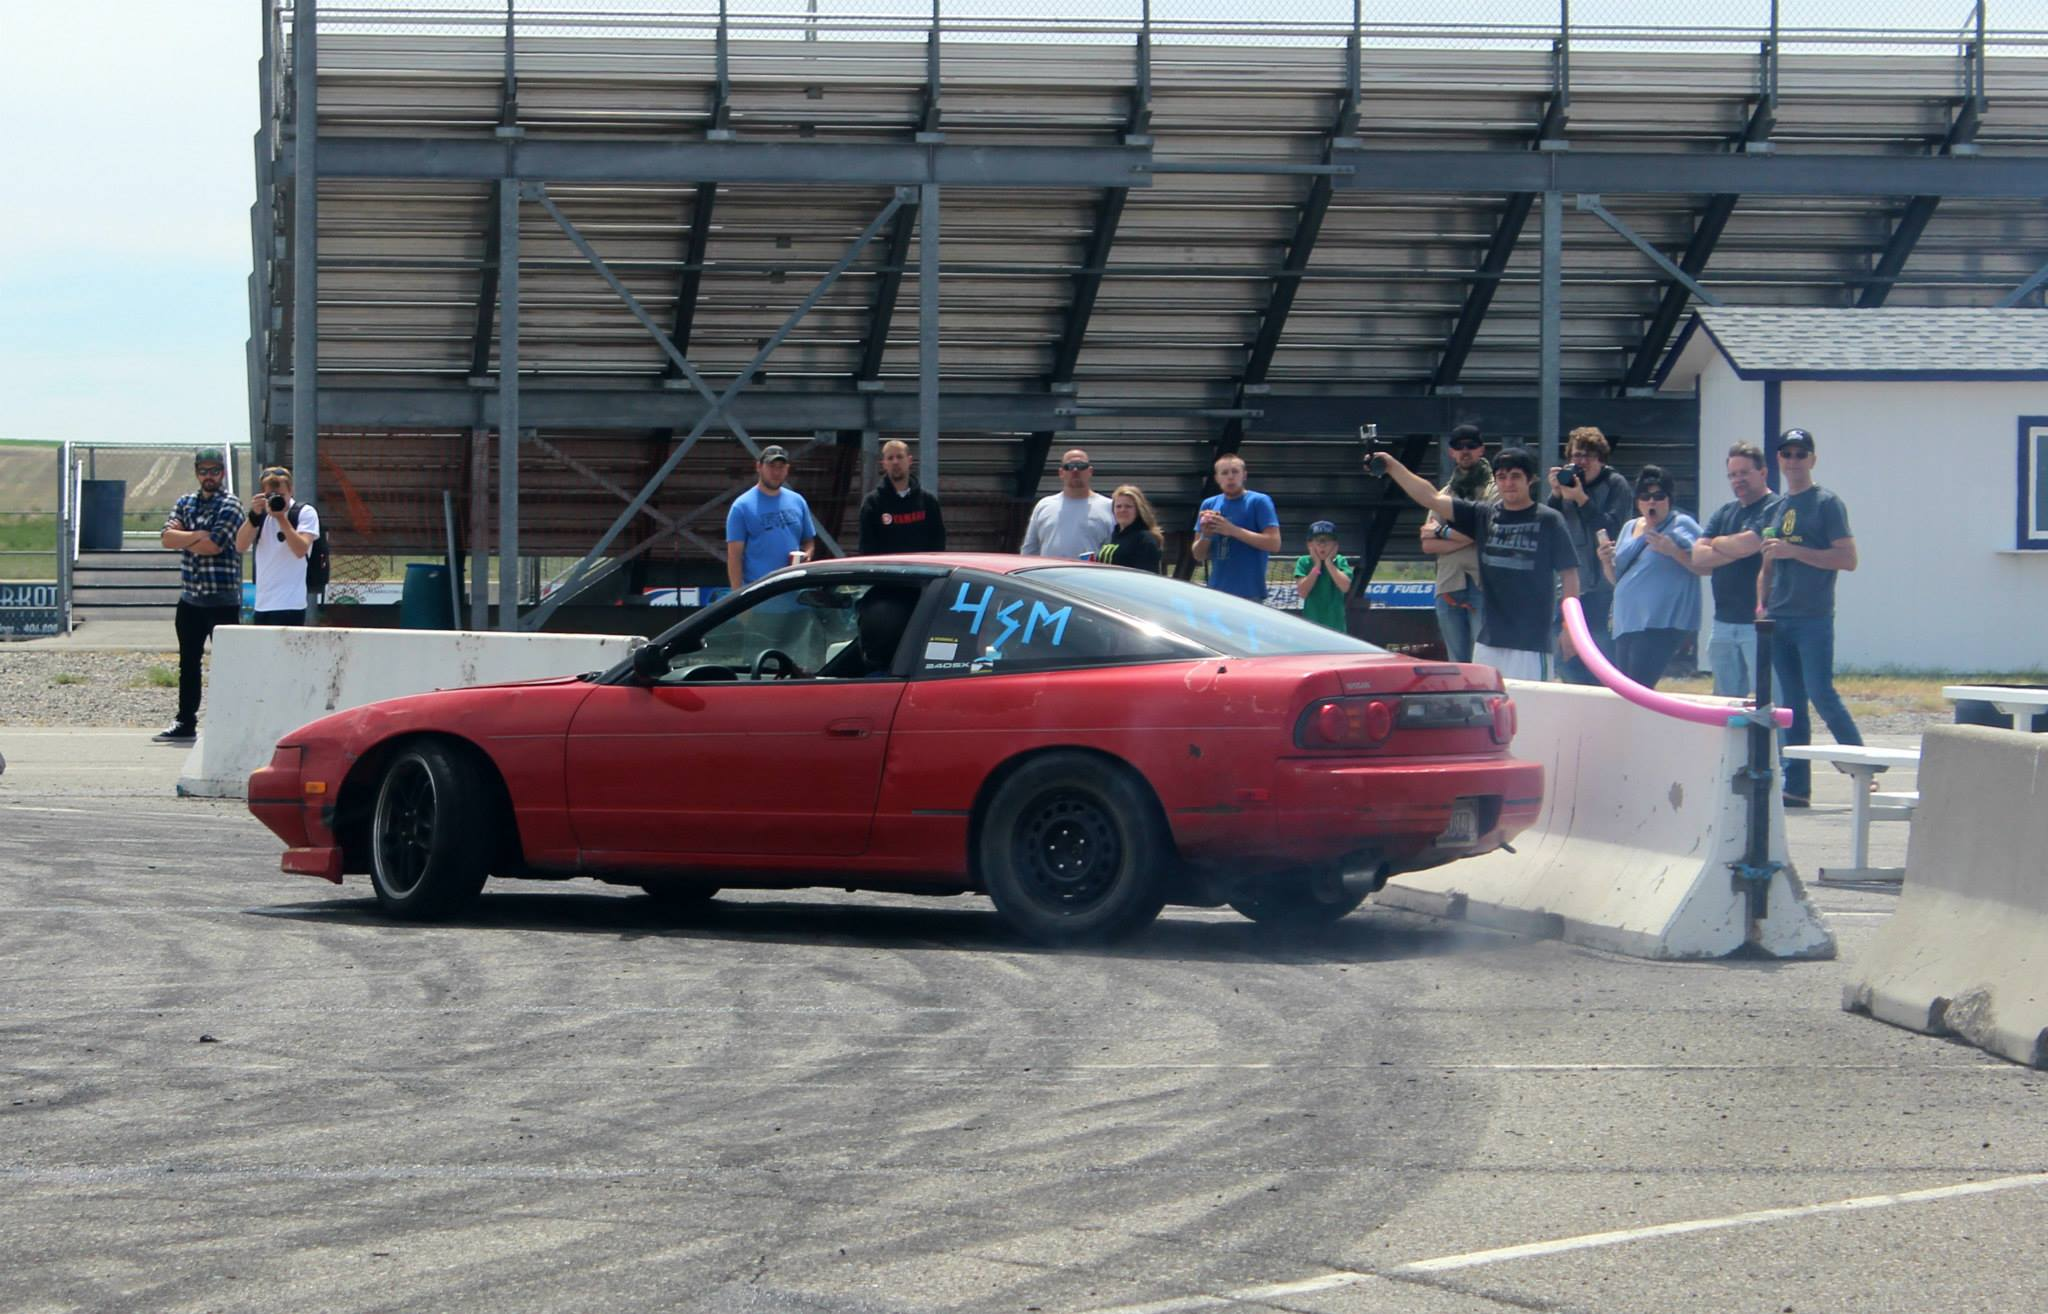 Andy in his sr20 240 smacking some n